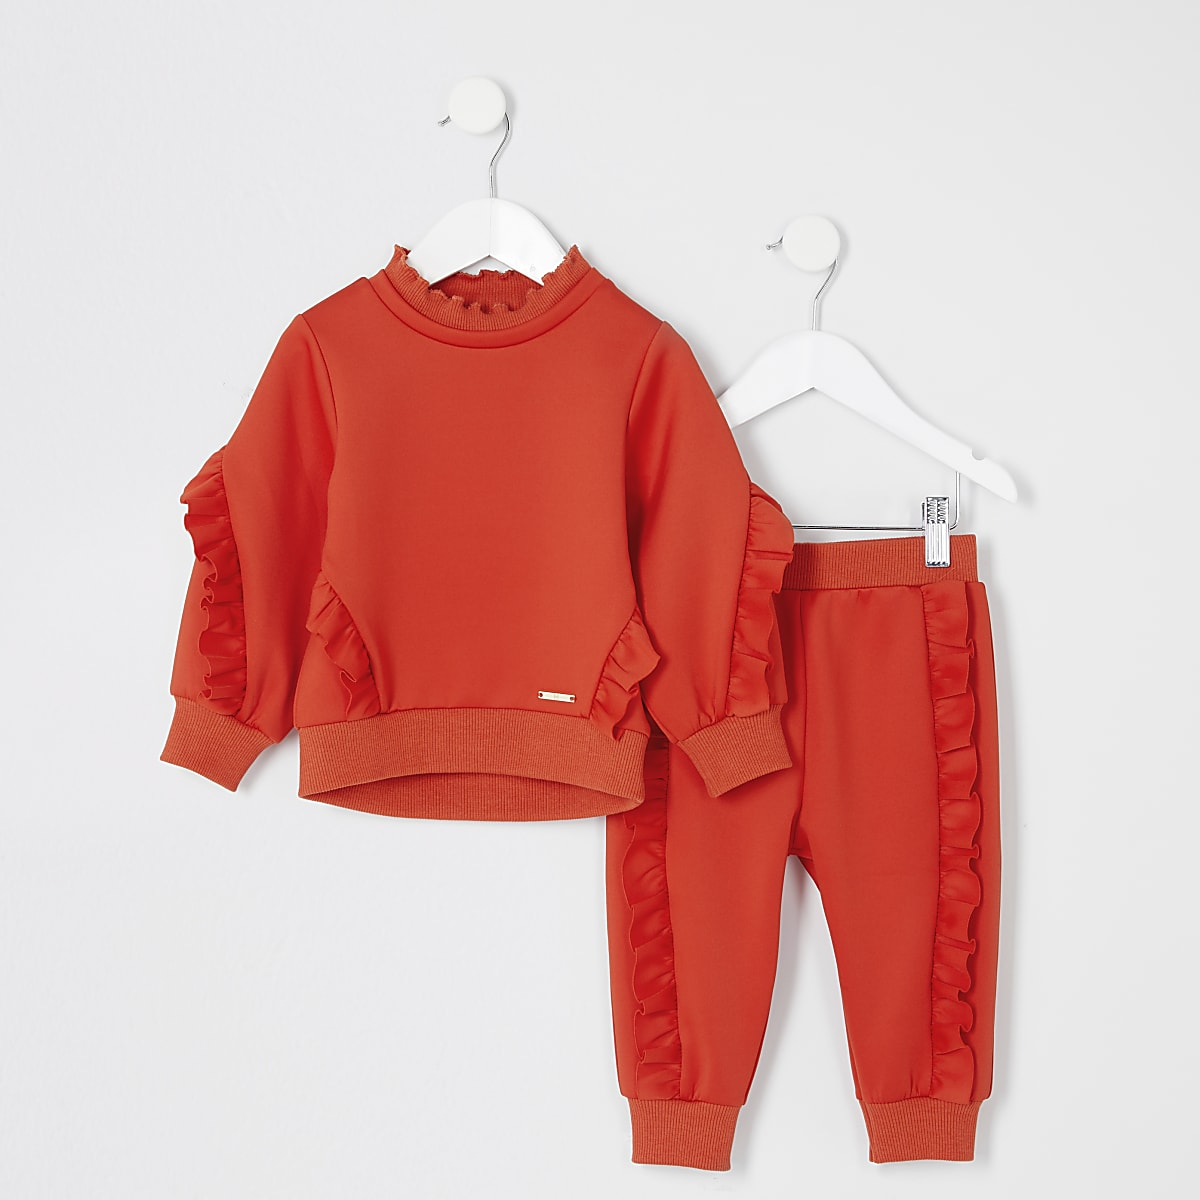 Mini girls orange frill sweatshirt outfit